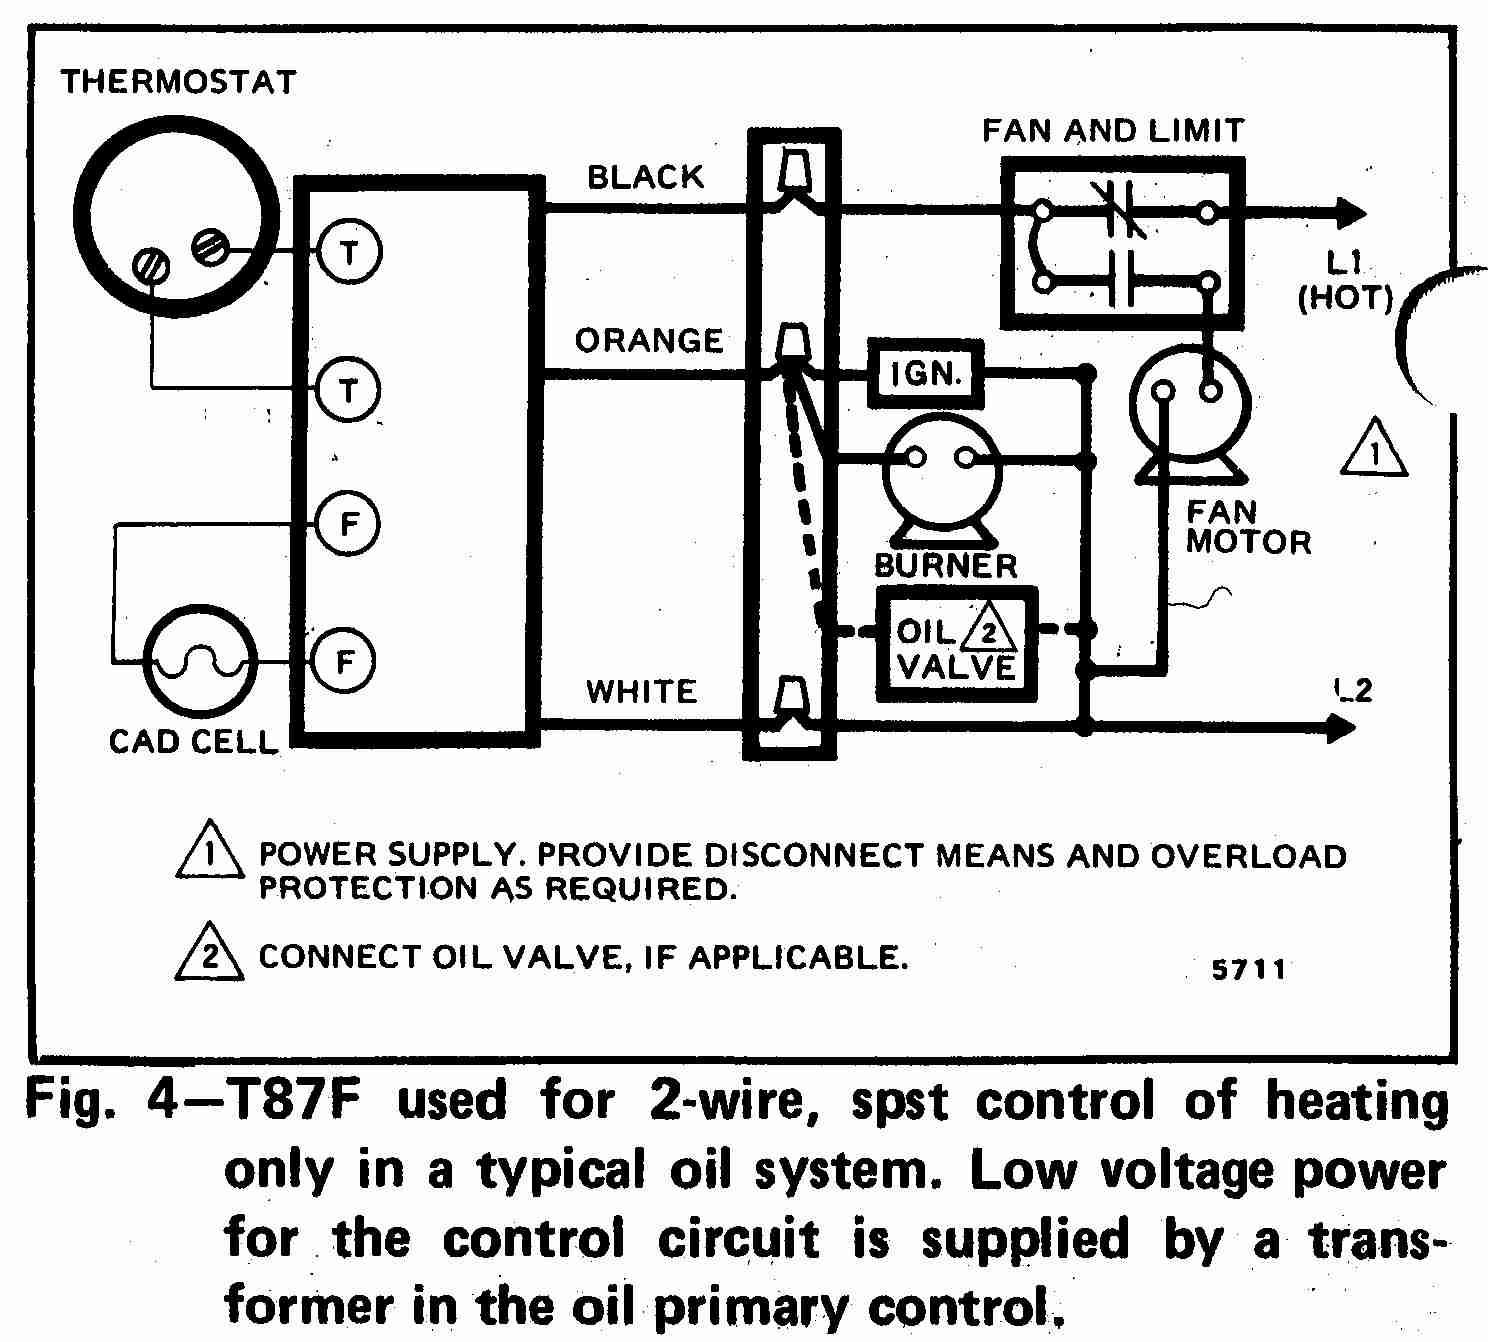 hight resolution of hvac system wiring automotive wiring diagrams air conditioning wiring electrical wiring for hvac